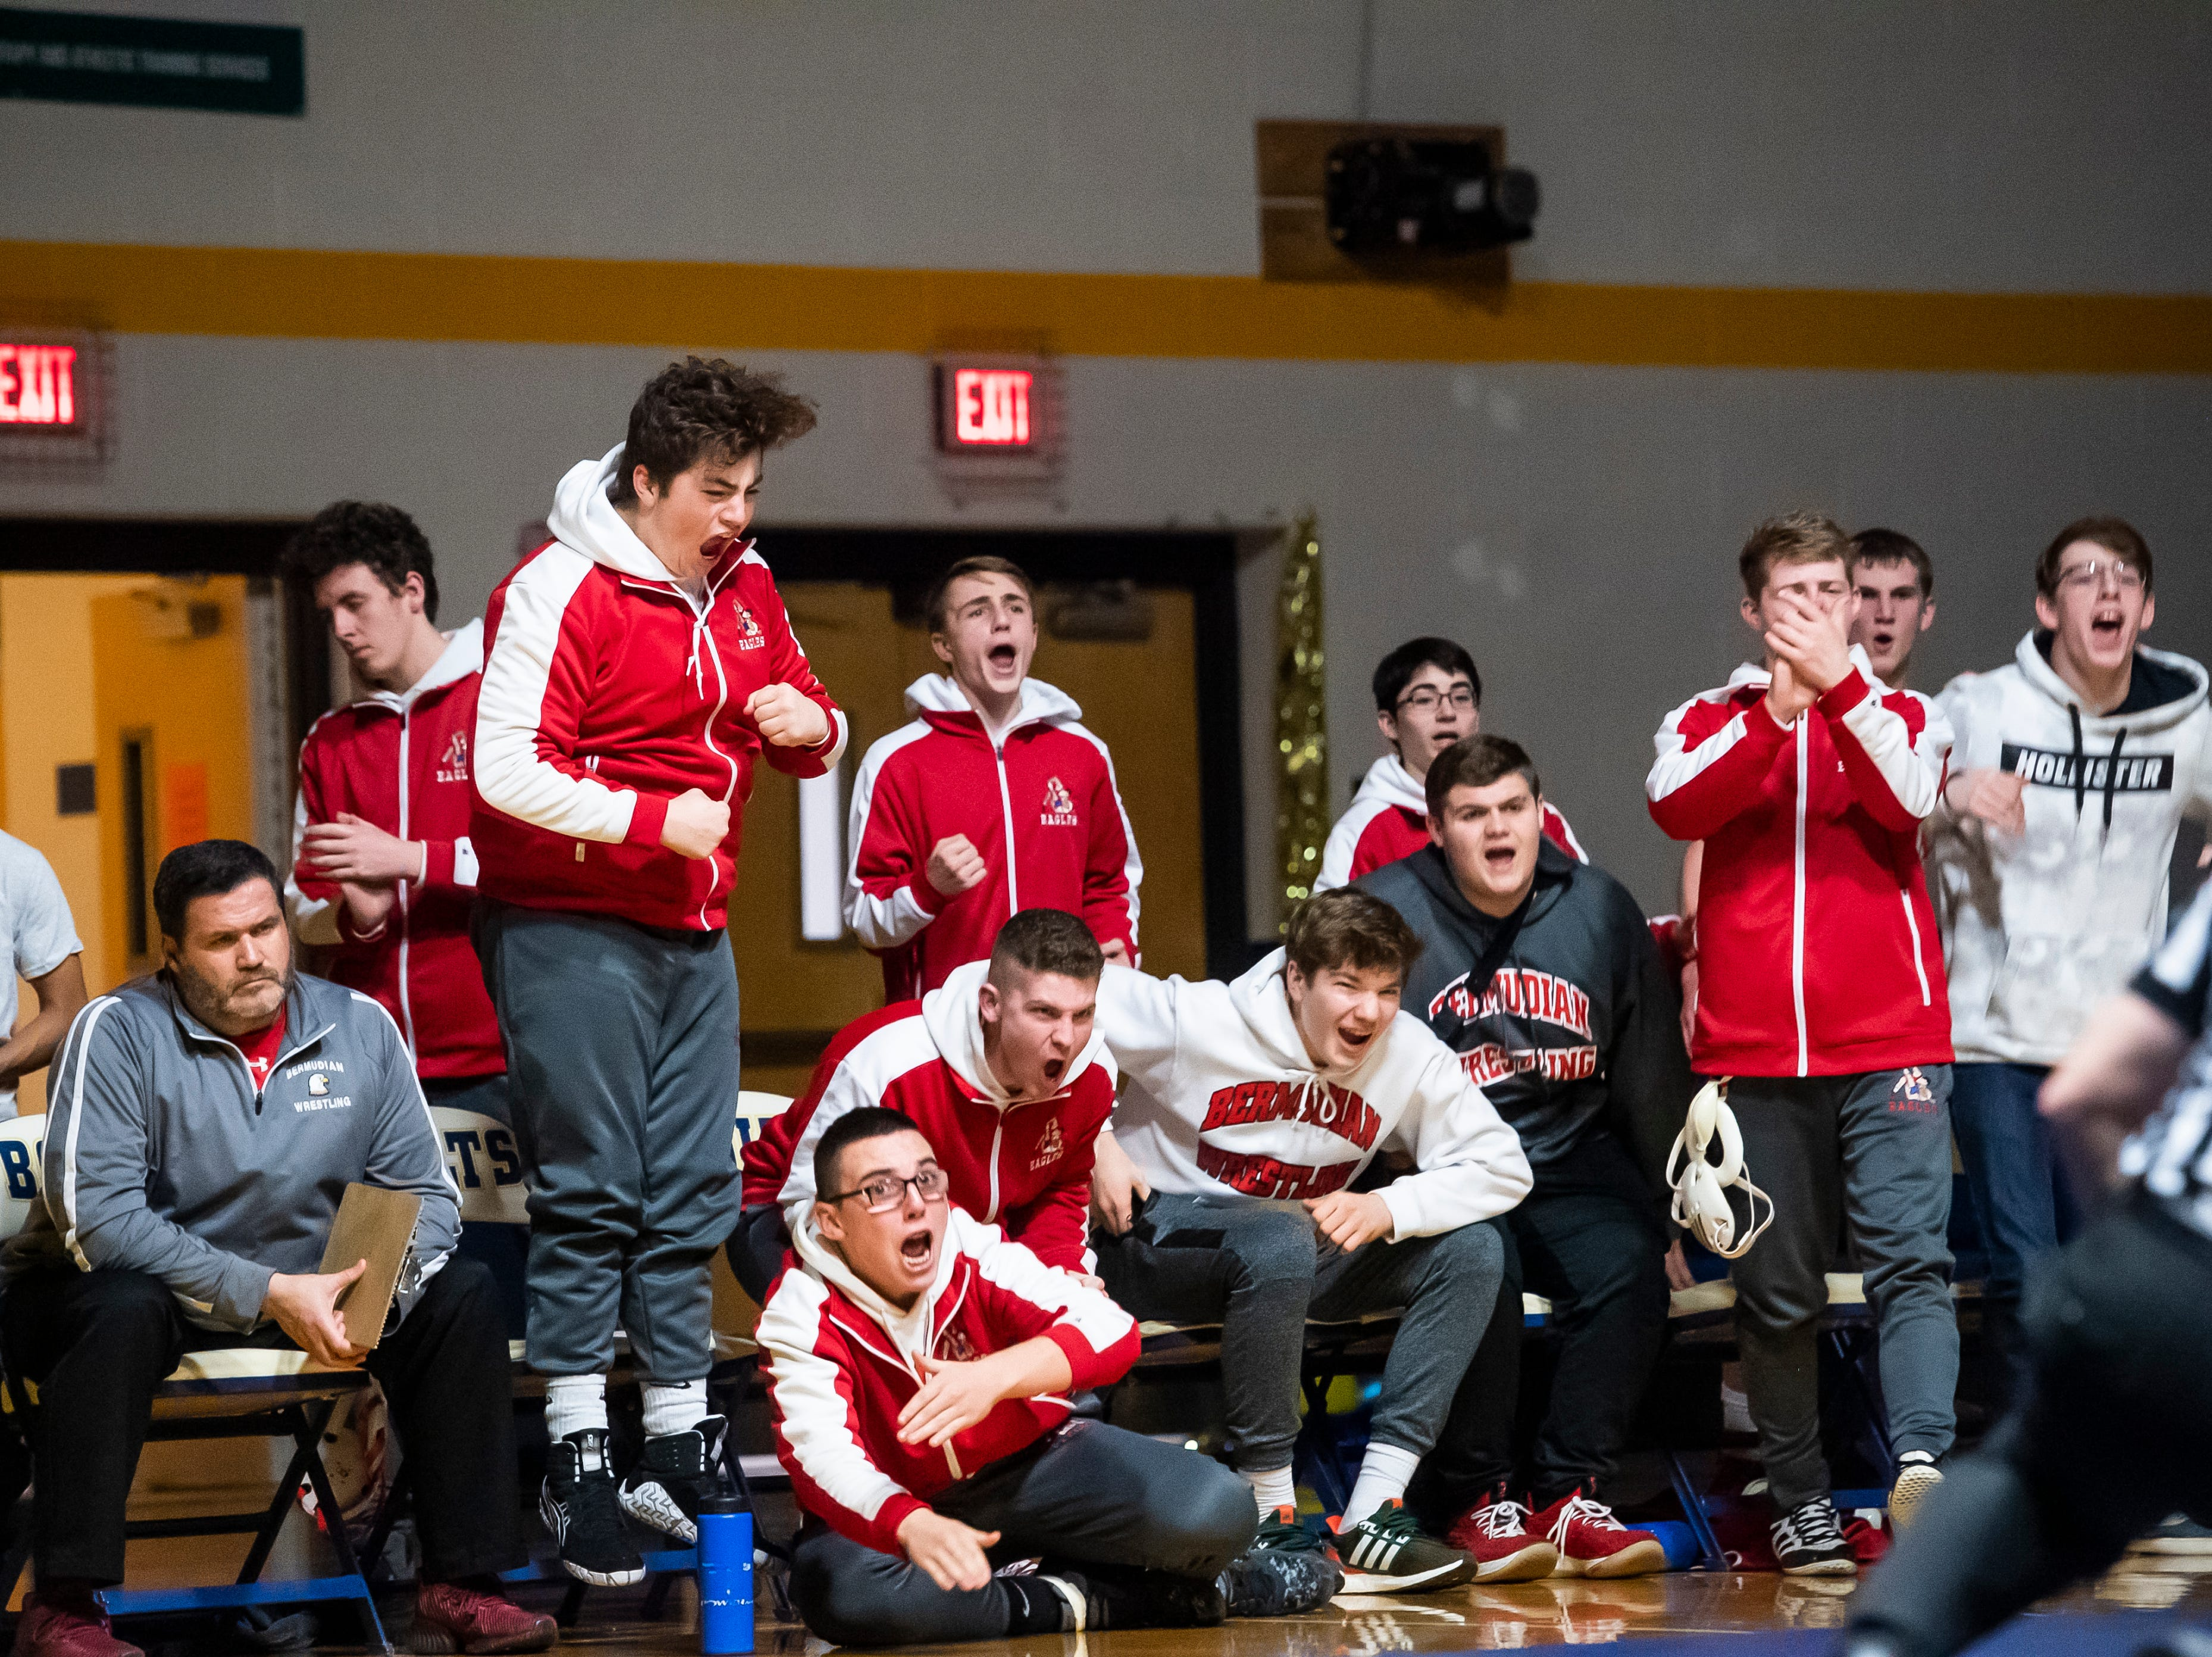 The Bermudian Springs bench reacts after Tanner Althoff pins Littlestown's Jacob Yealy in the 145-pound bout on Thursday, January 24, 2019.